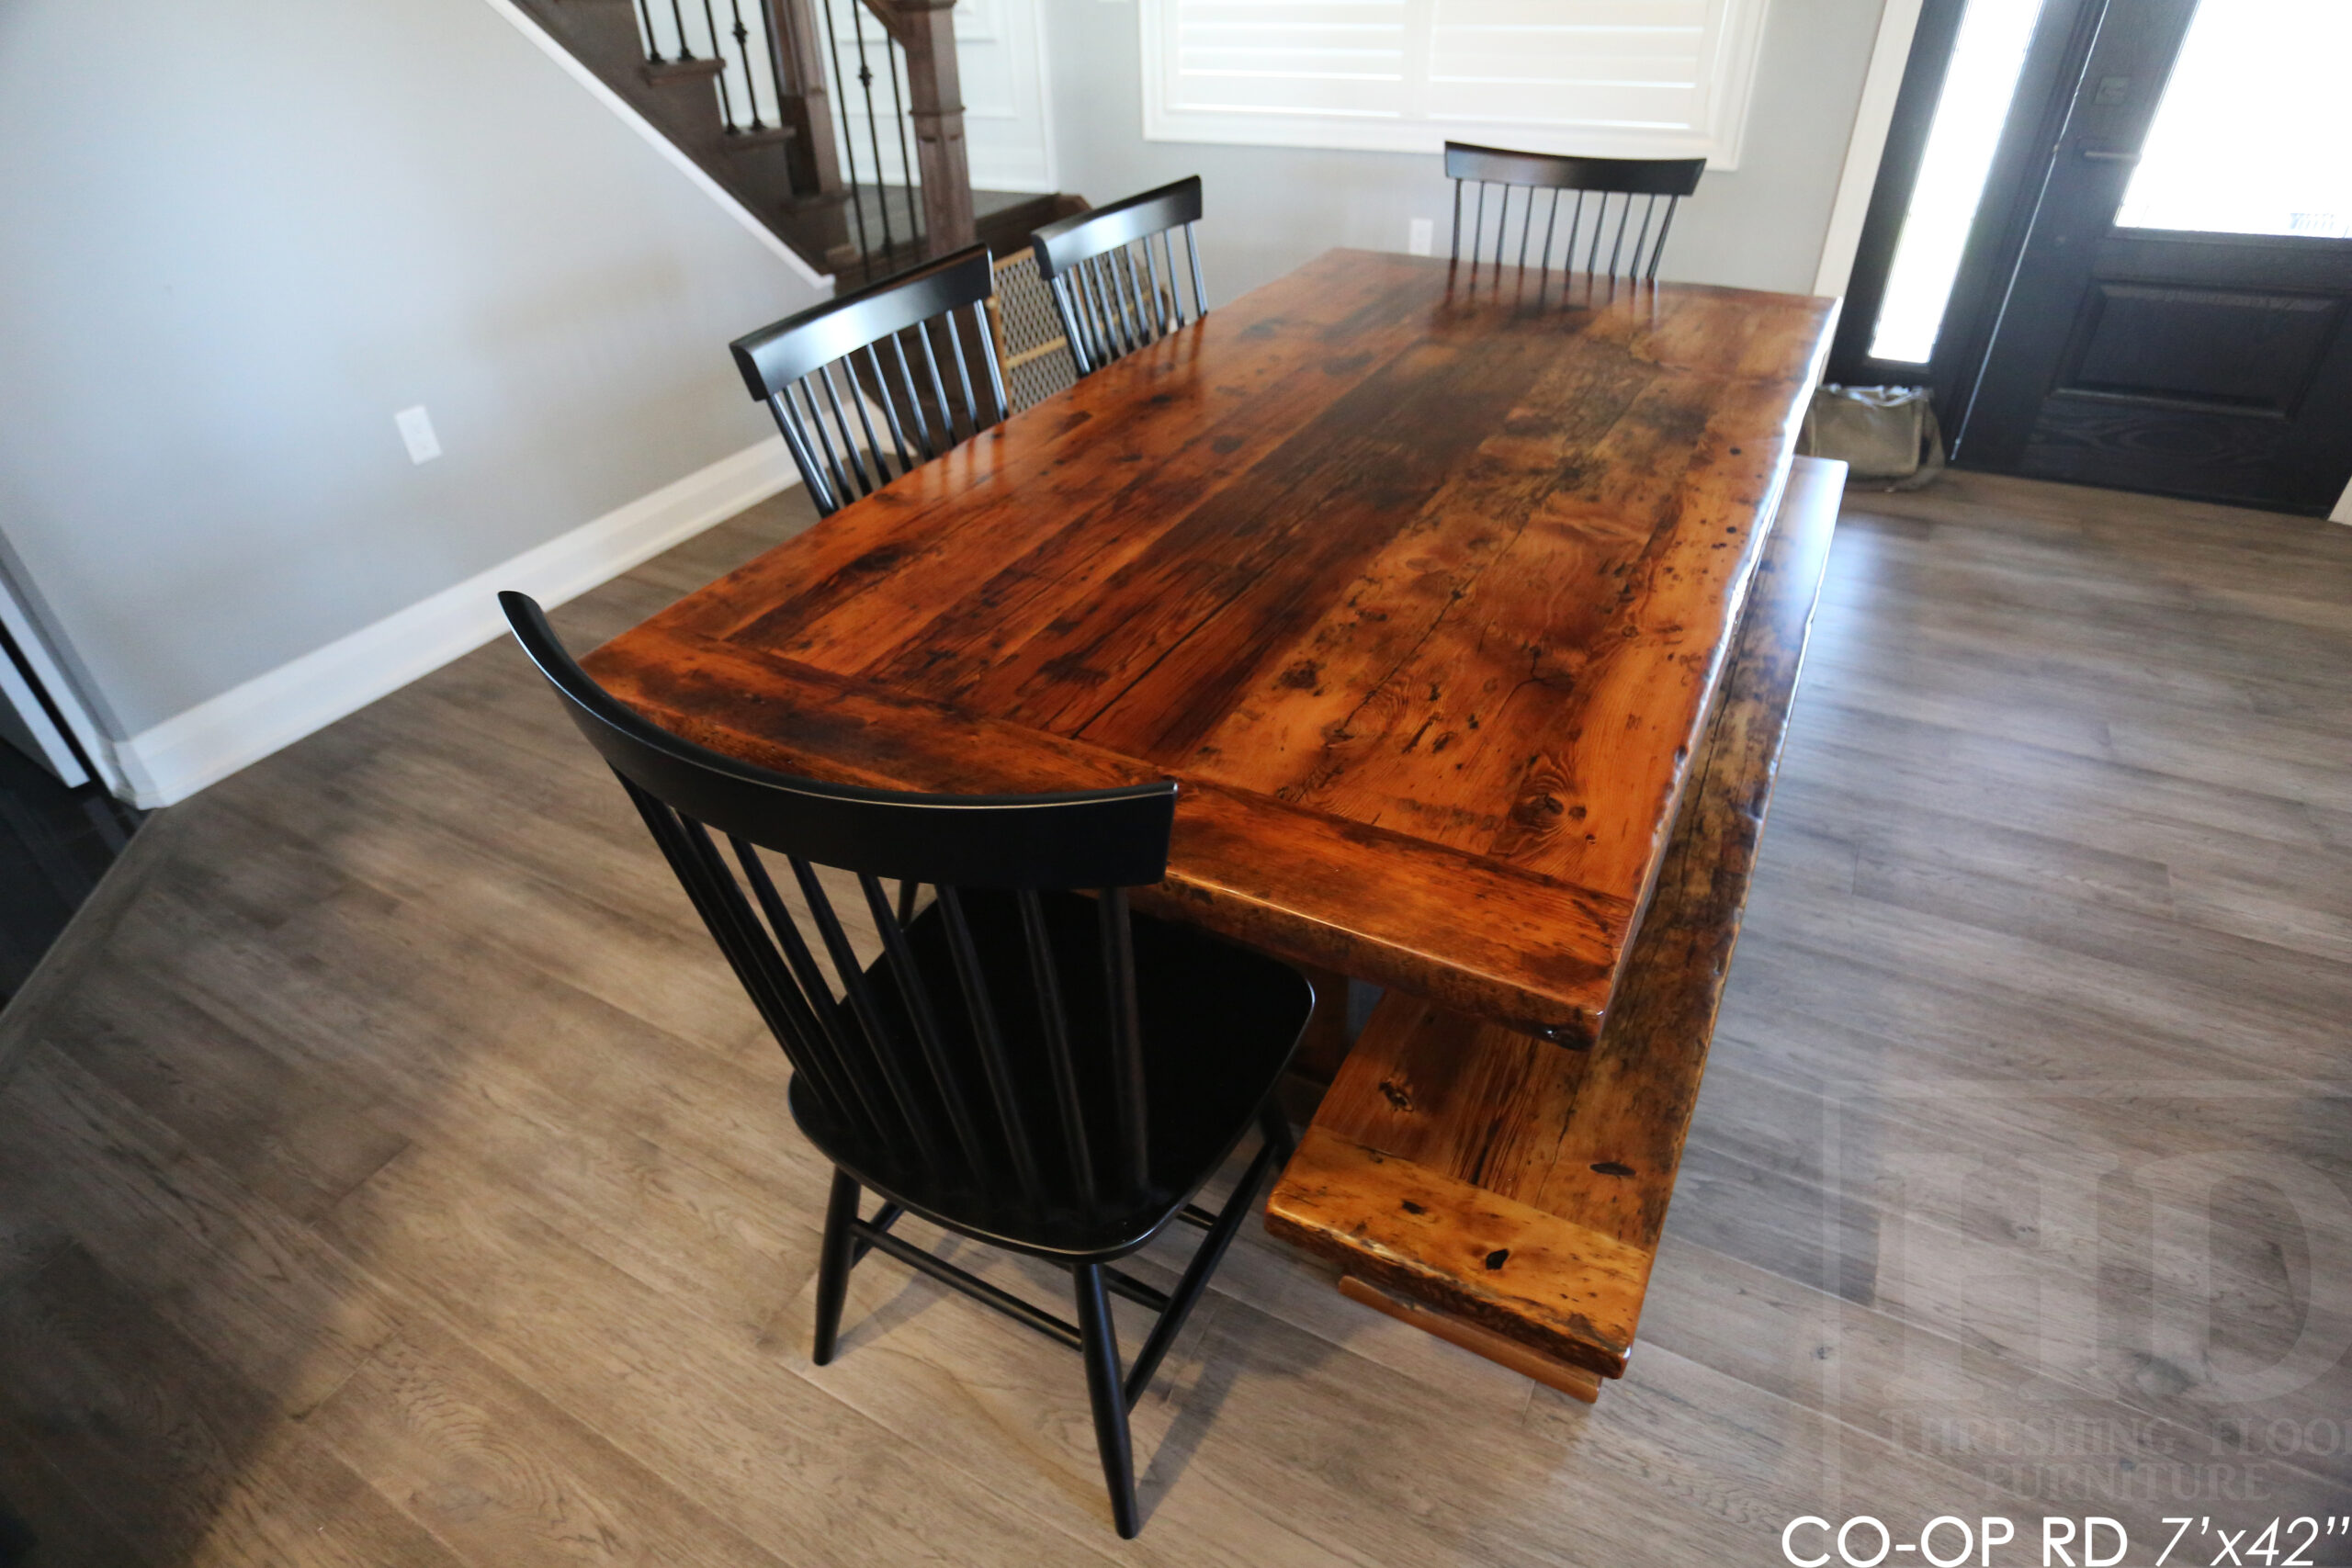 """Details: 7' Reclaimed Wood Table we made for an Orono home - 42"""" wide - Trestle Base - Hemlock Threshing Floor Construction - Original edges & distressing maintained - Premium epoxy + satin polyurethane finish - 7' Reclaimed Wood Trestle Bench - [4] Shaker Chairs / Wormy Maple / Solid black / Polyurethane clearcoat finish / www.table.ca"""